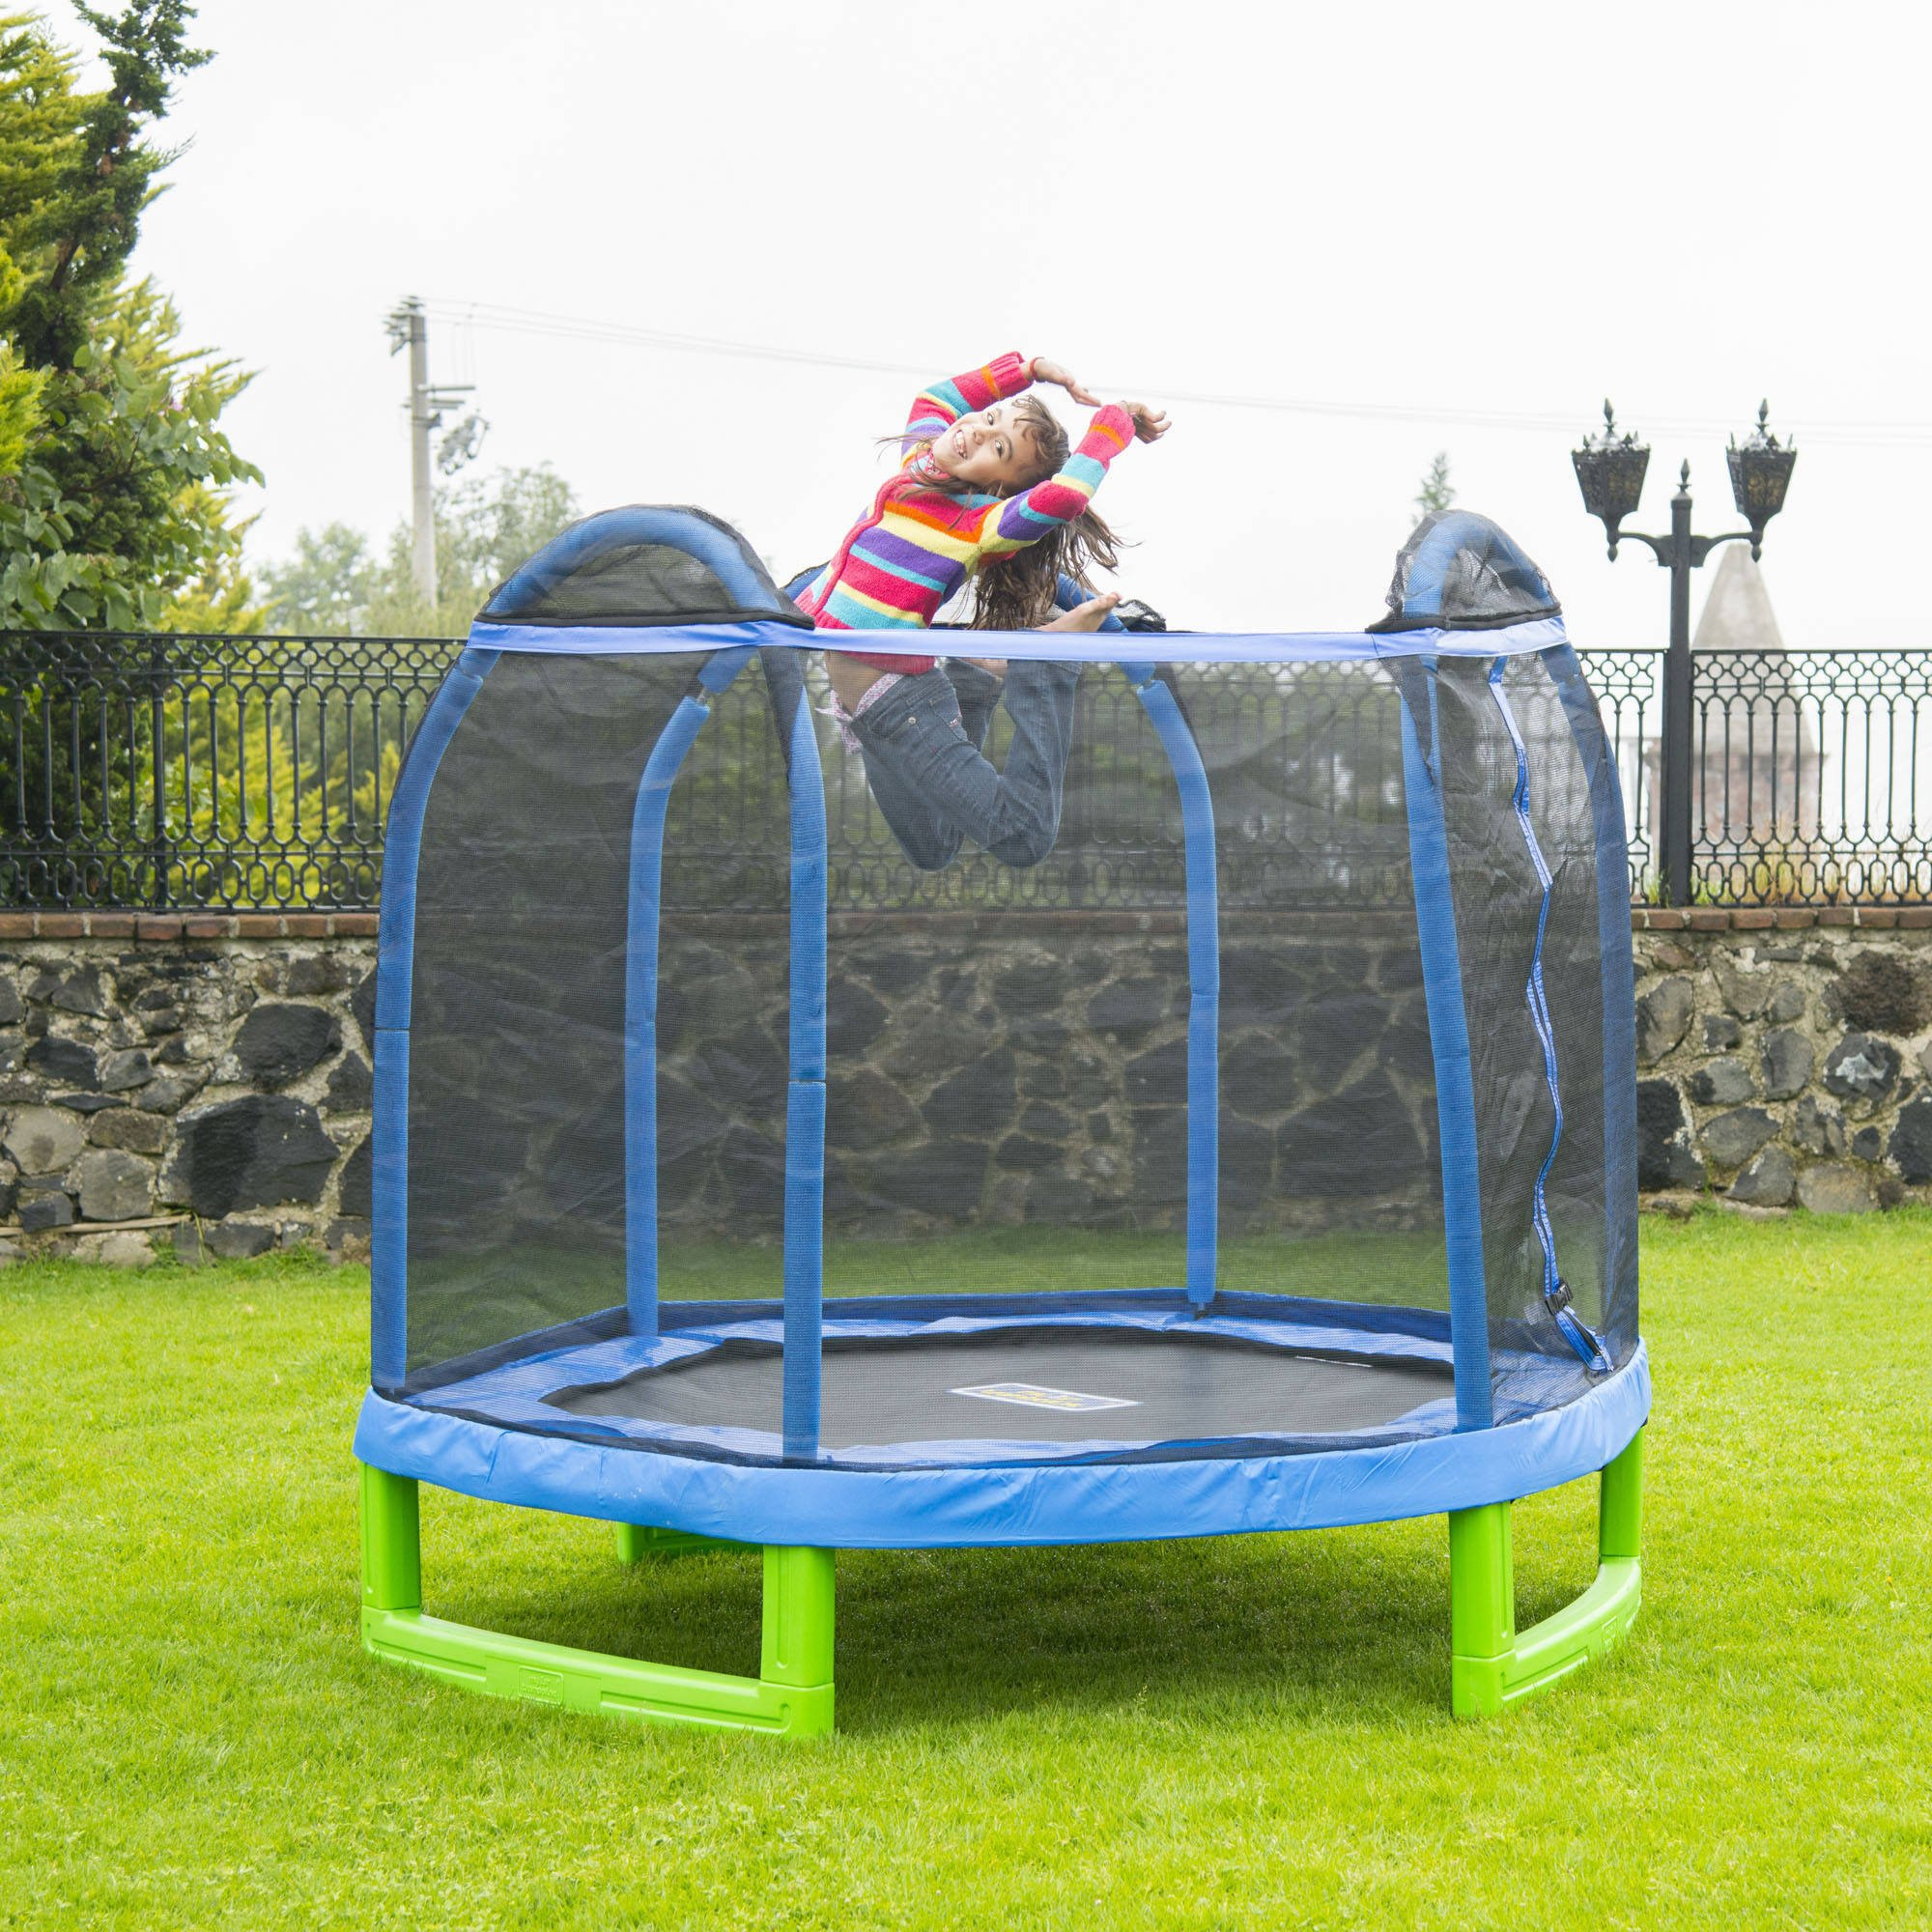 Bounce Pro 7' My First Indoor/Outdoor Entry Level Trampoline For Children